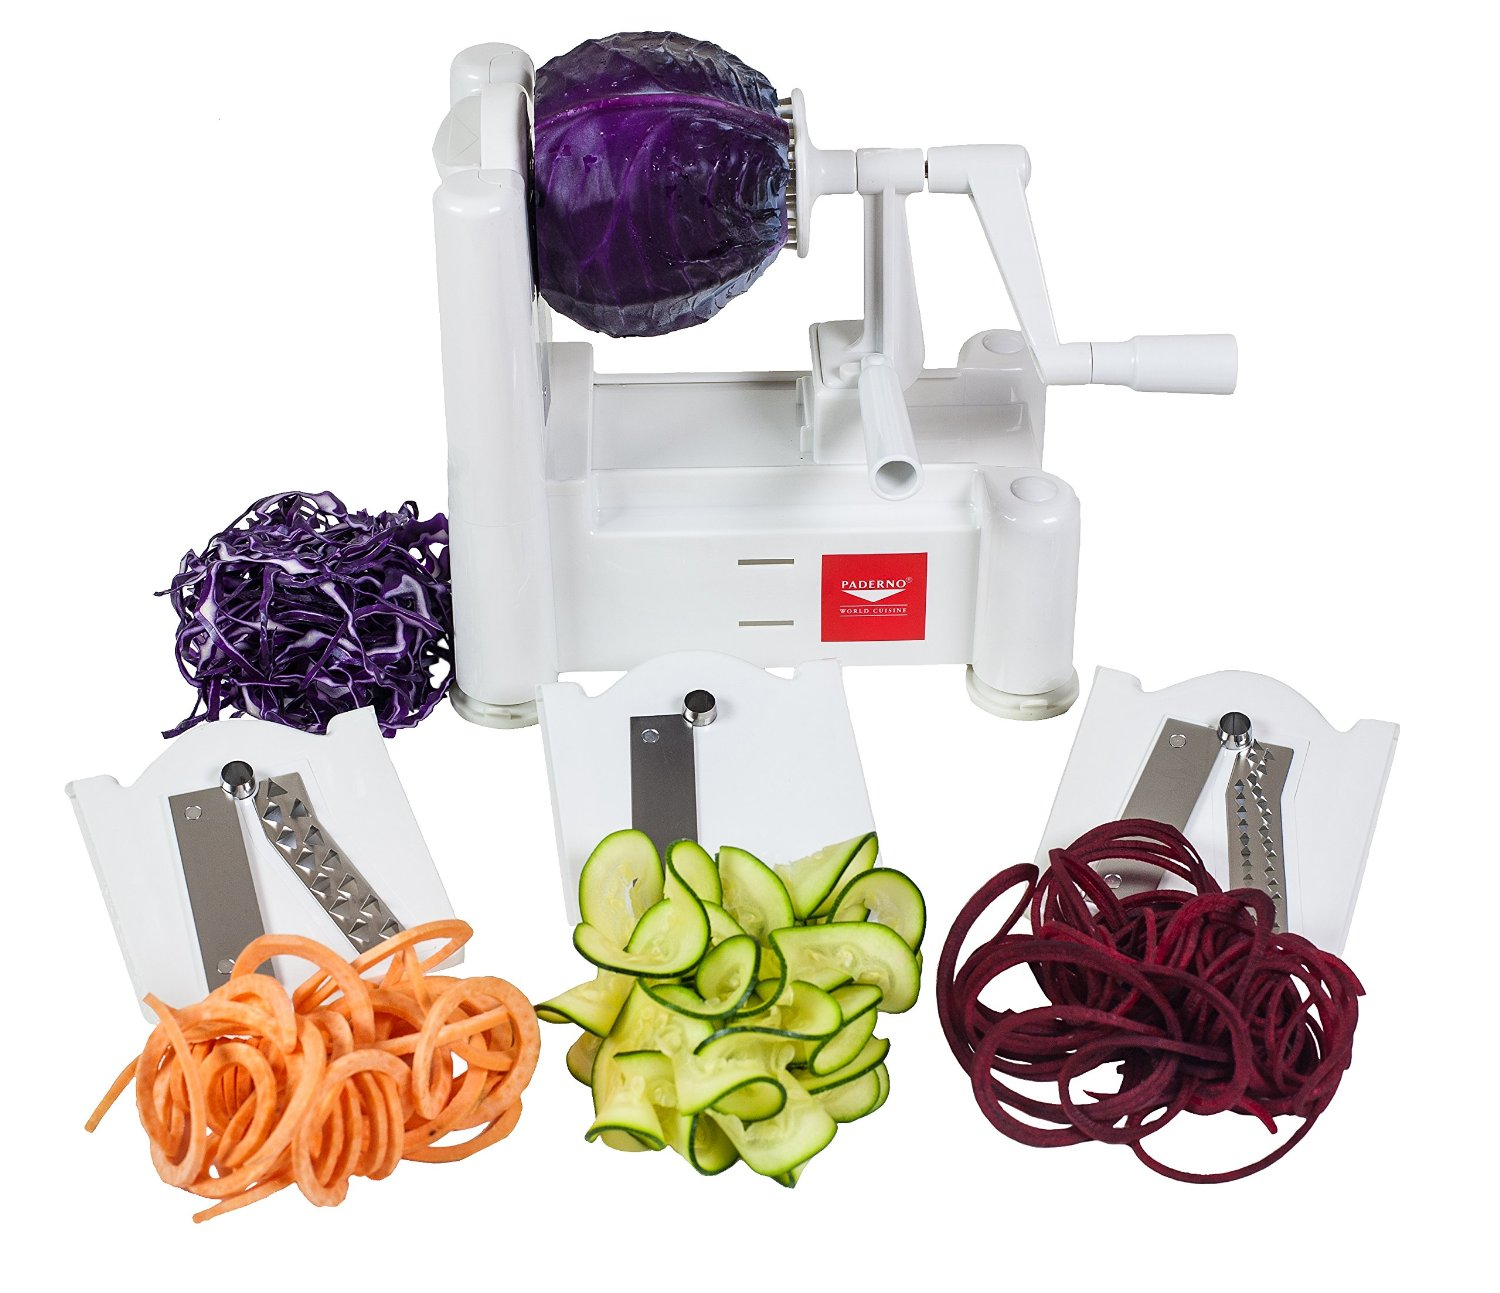 Paderno Spiral Vegetable Slicer surrounded by sliced vegetables